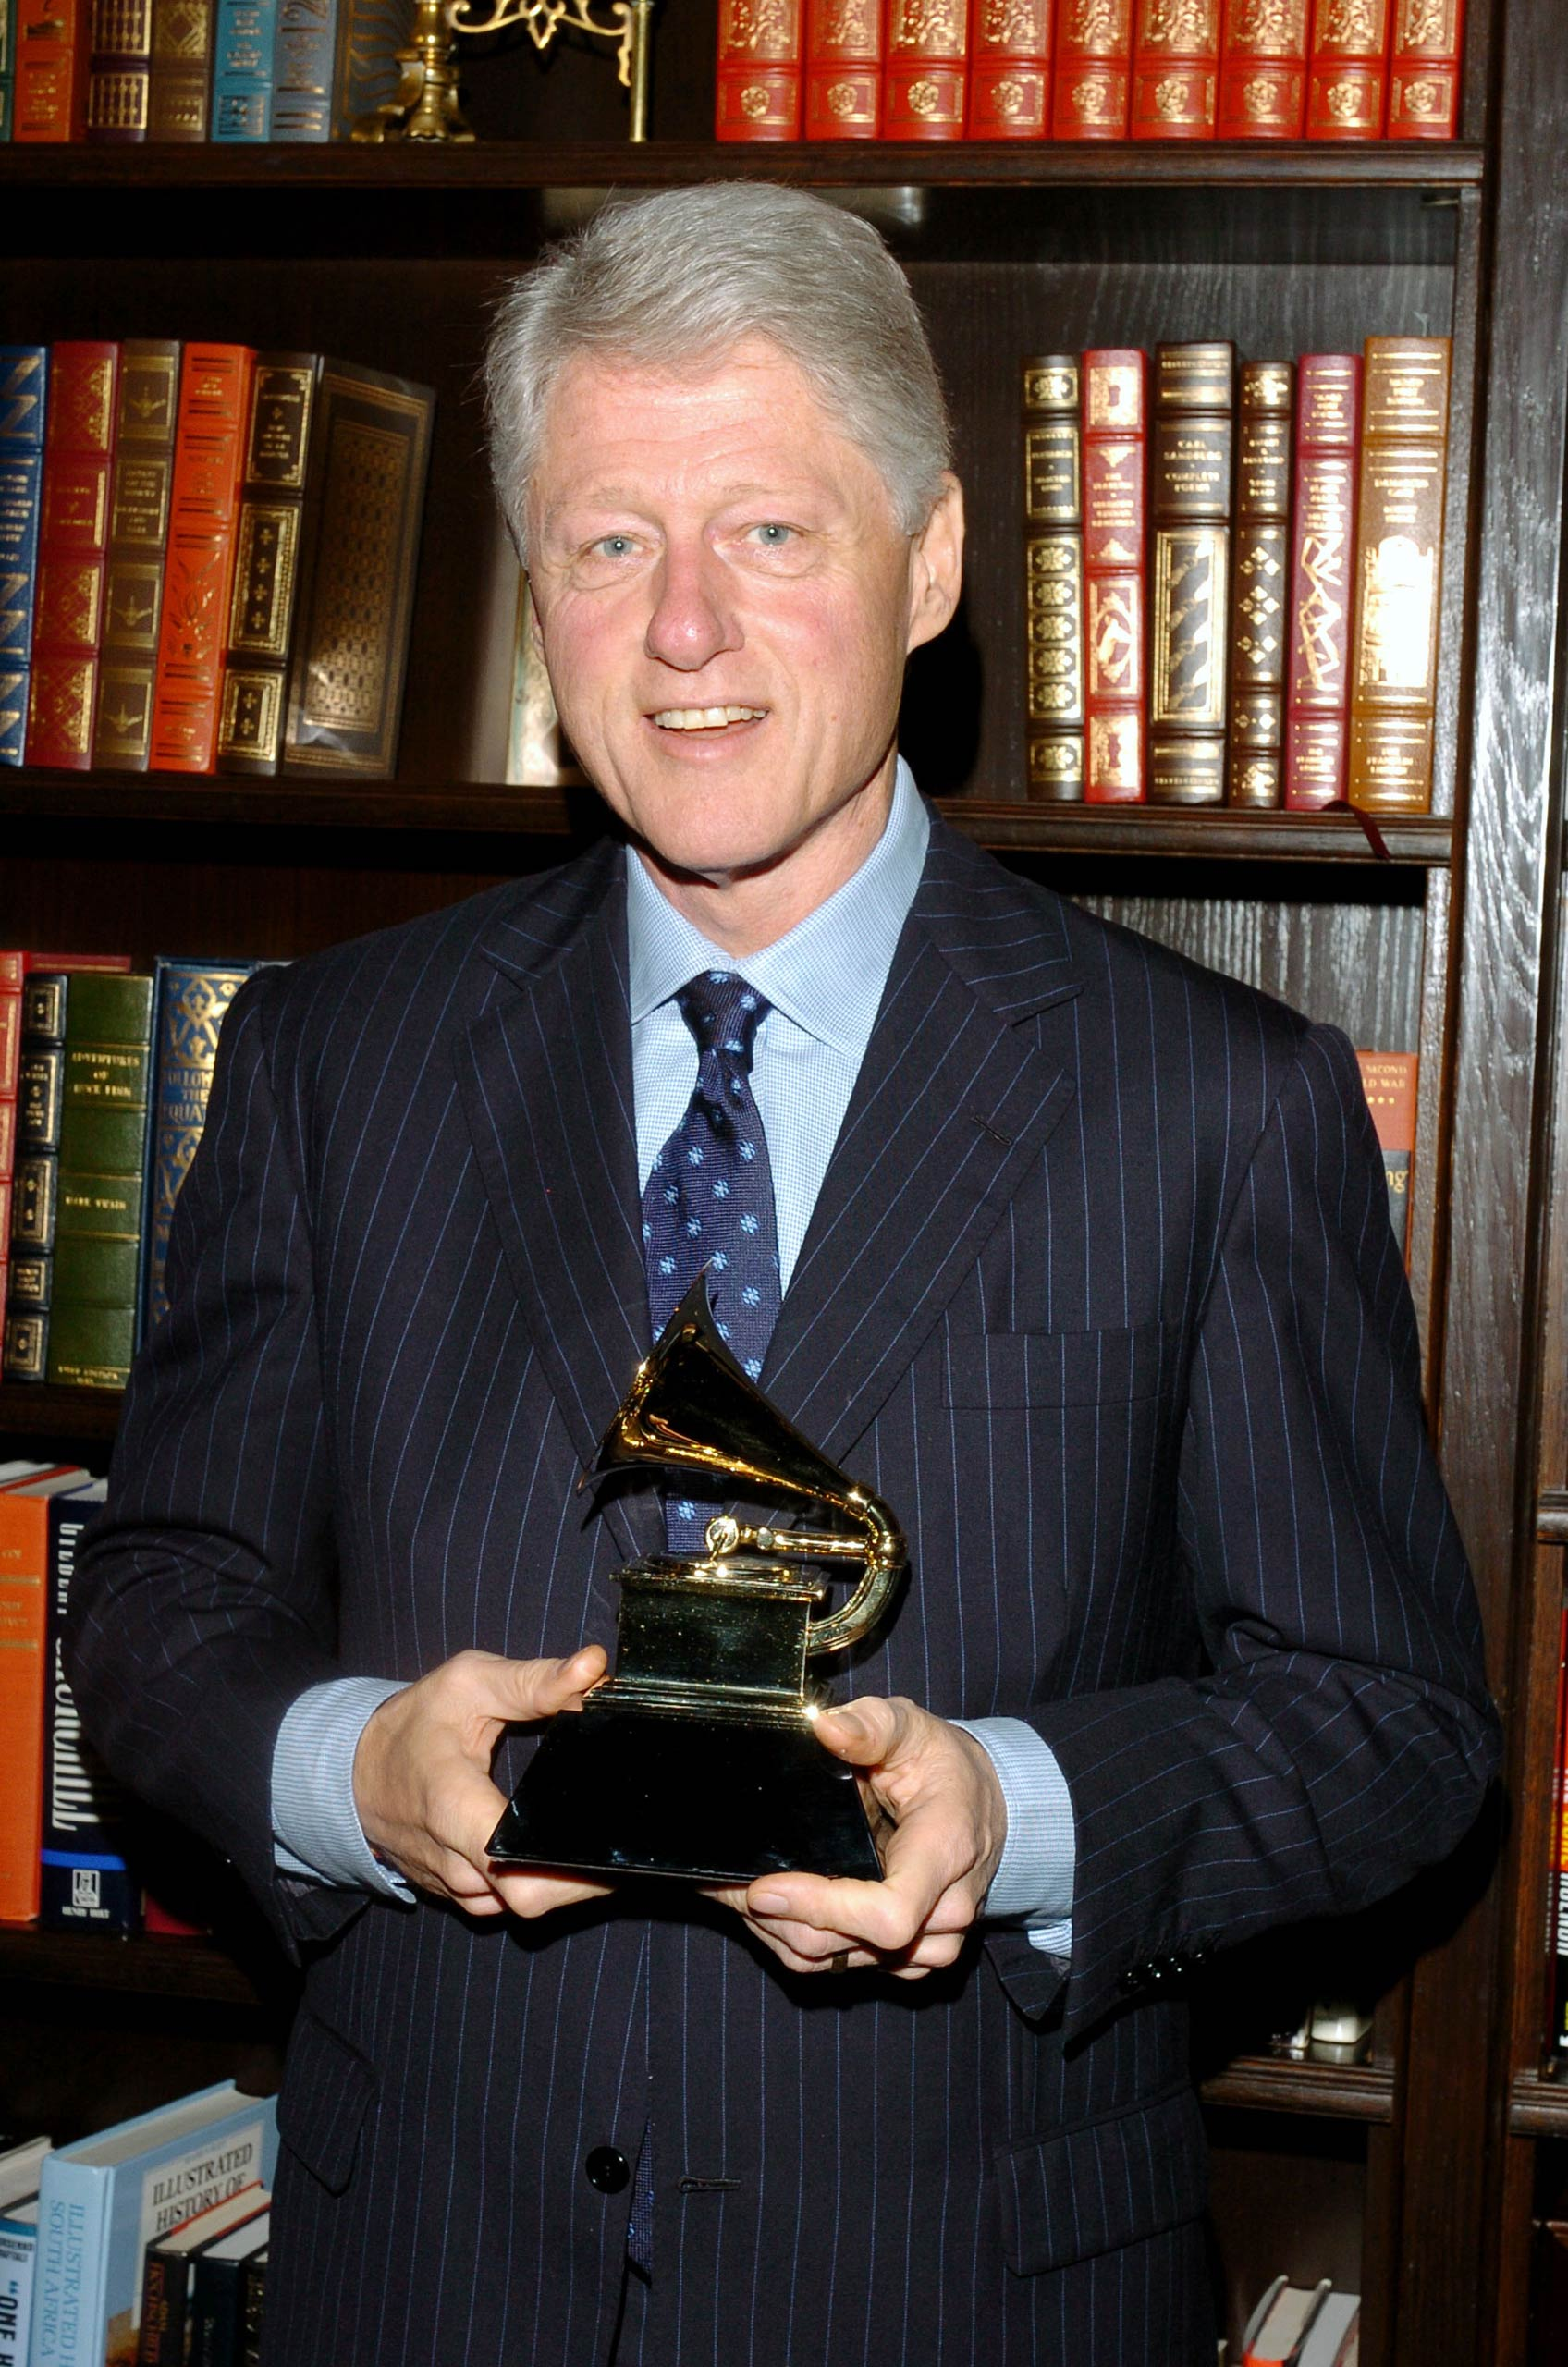 Bill Clinton Presented with His GRAMMY Award for Best Spoken Word Album for  My Life  - February 17, 2005